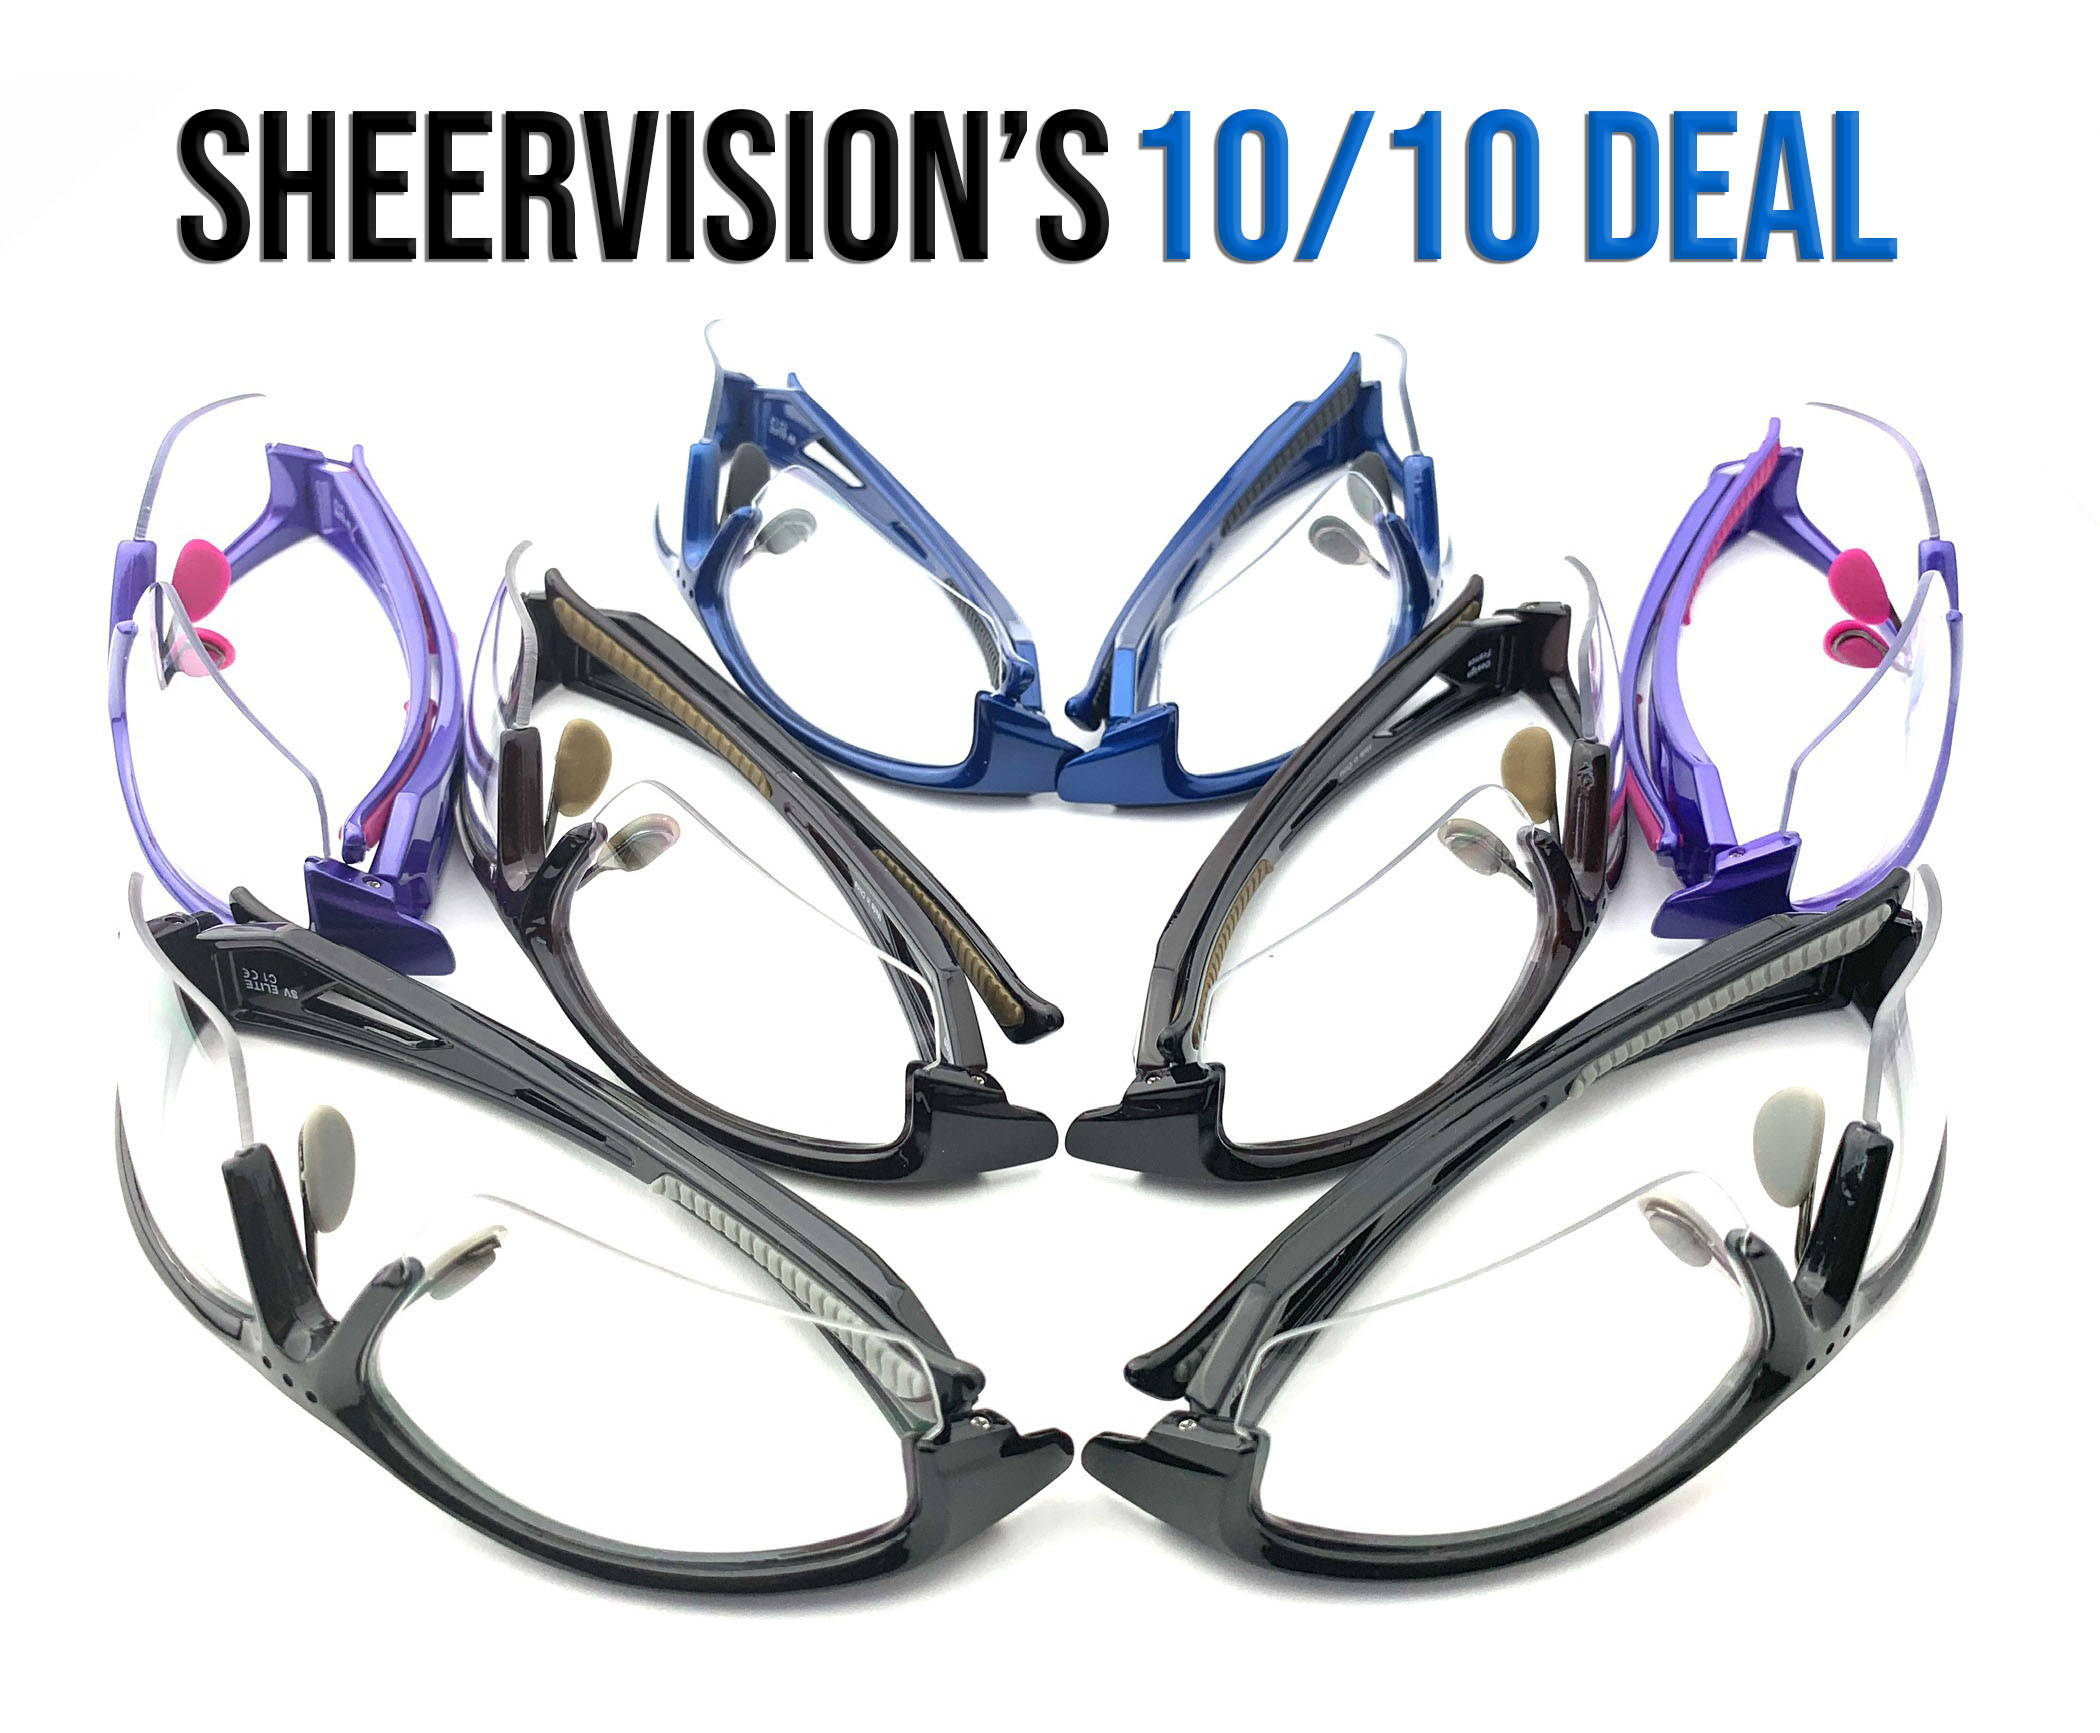 10% OFF + 10 FREE SAFETY FRAME Deal from SheerVision - Use towards $595+ Purchase of Dental or Surgical Loupes , Lights, or Package